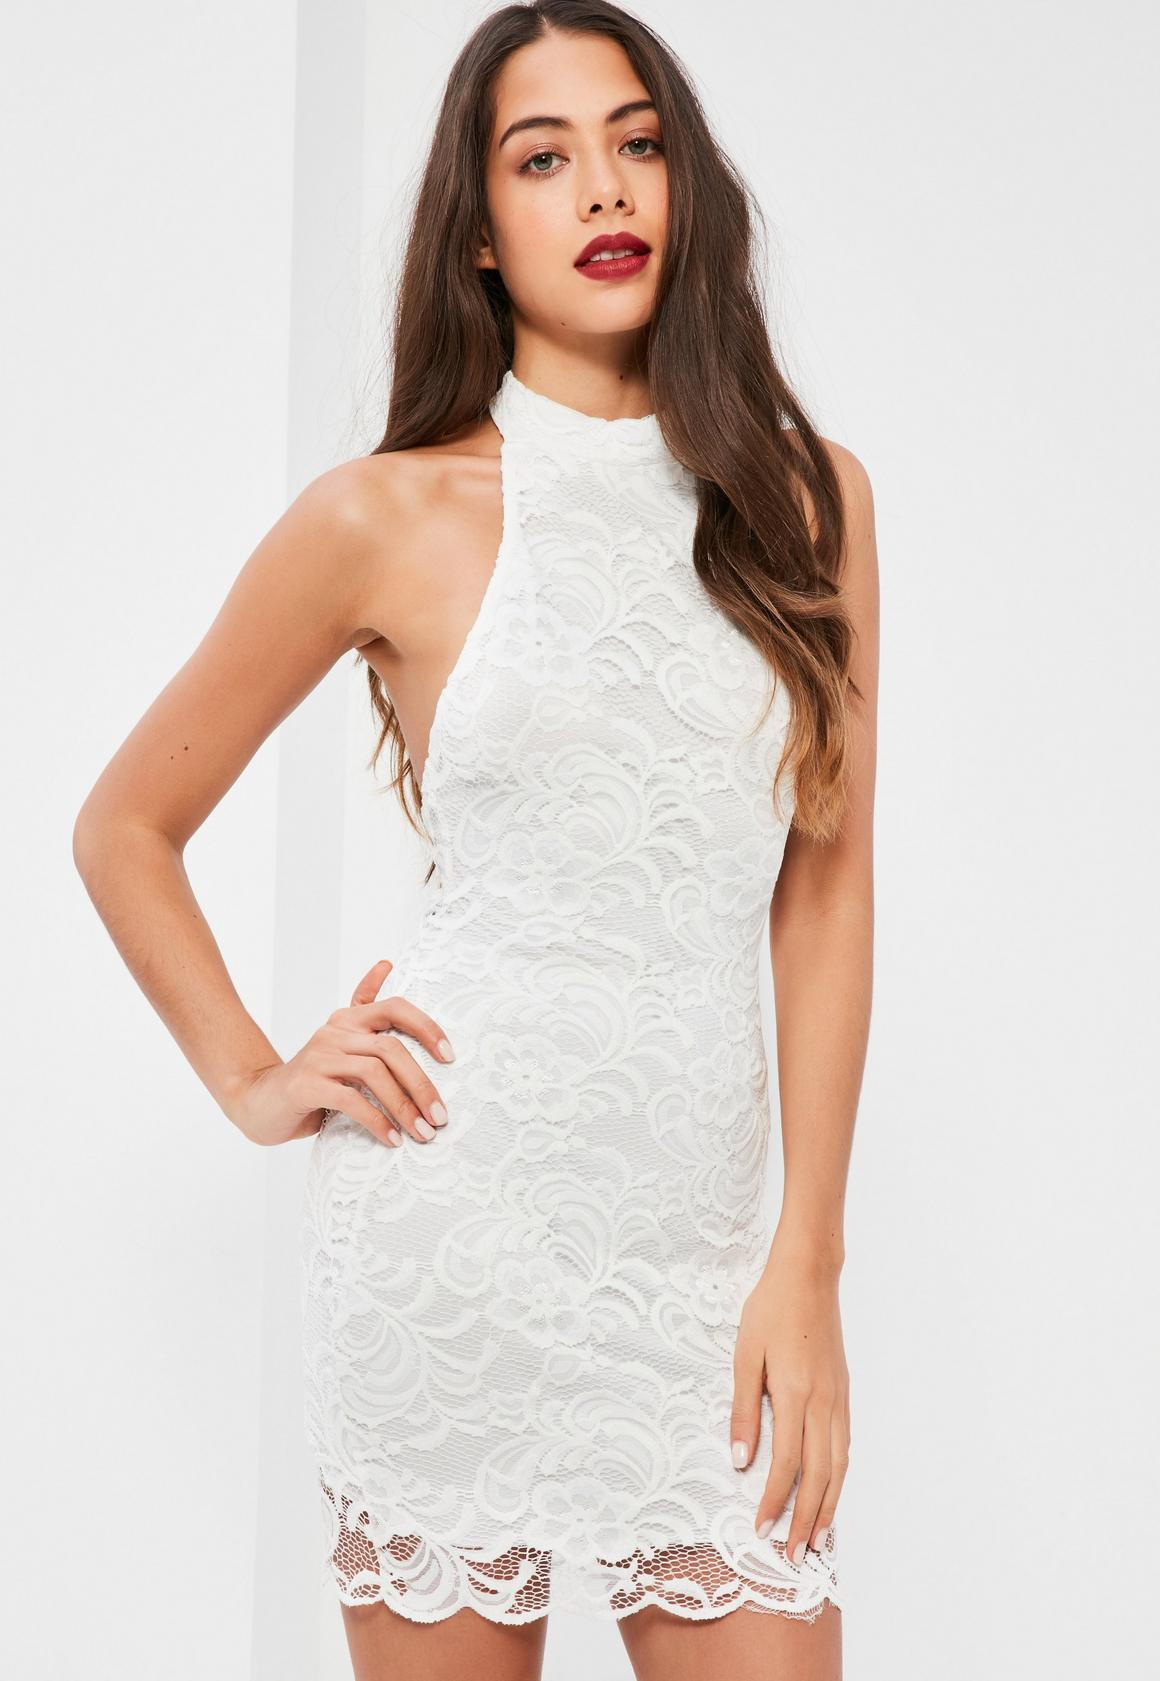 Bodycon dress in lace with high neck